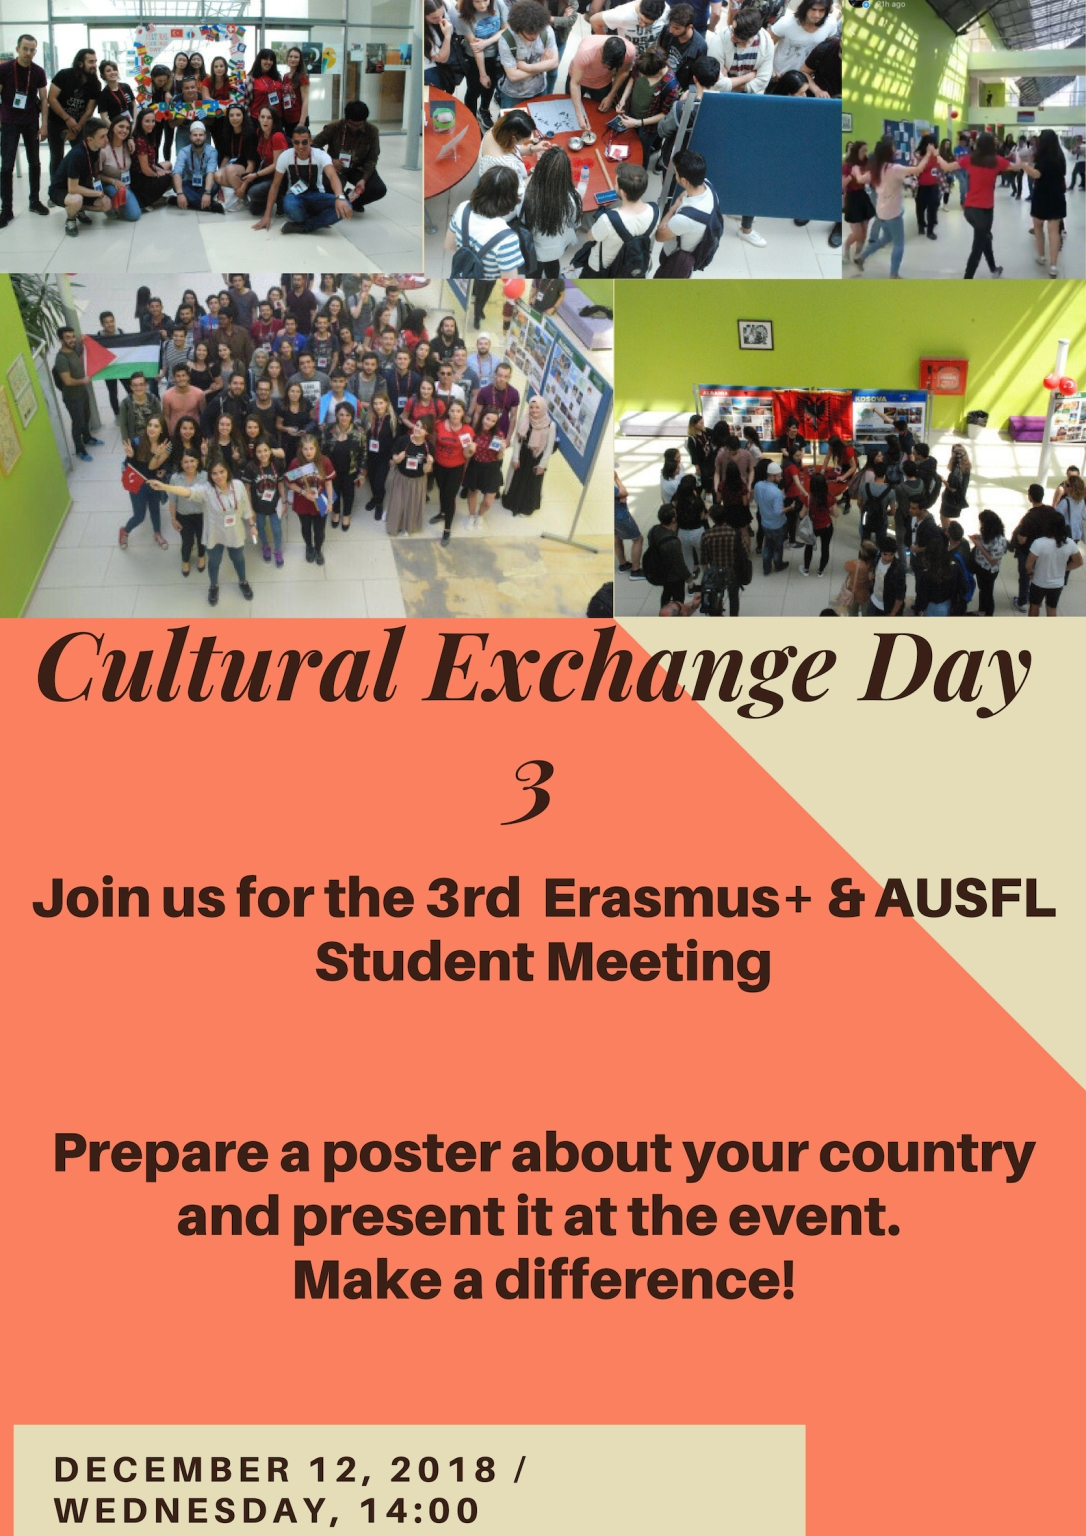 Cultural Exchange Day (3)